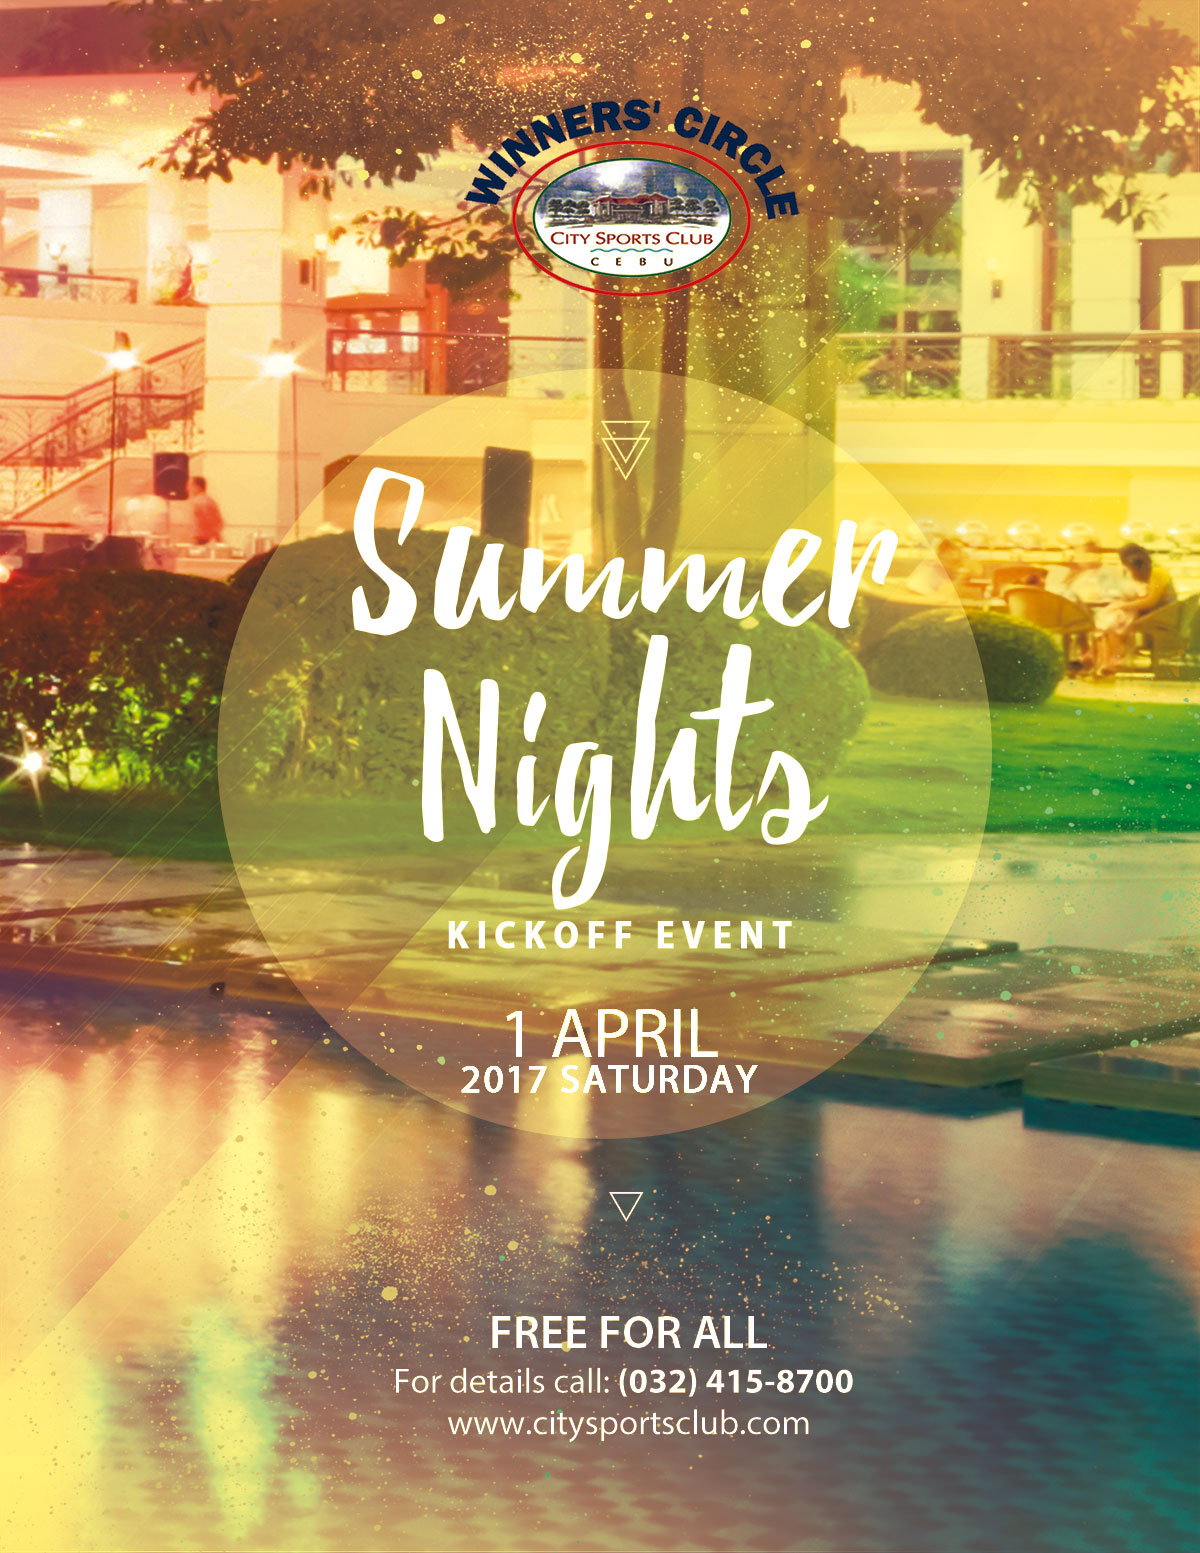 CSCC_SummerNights_FB